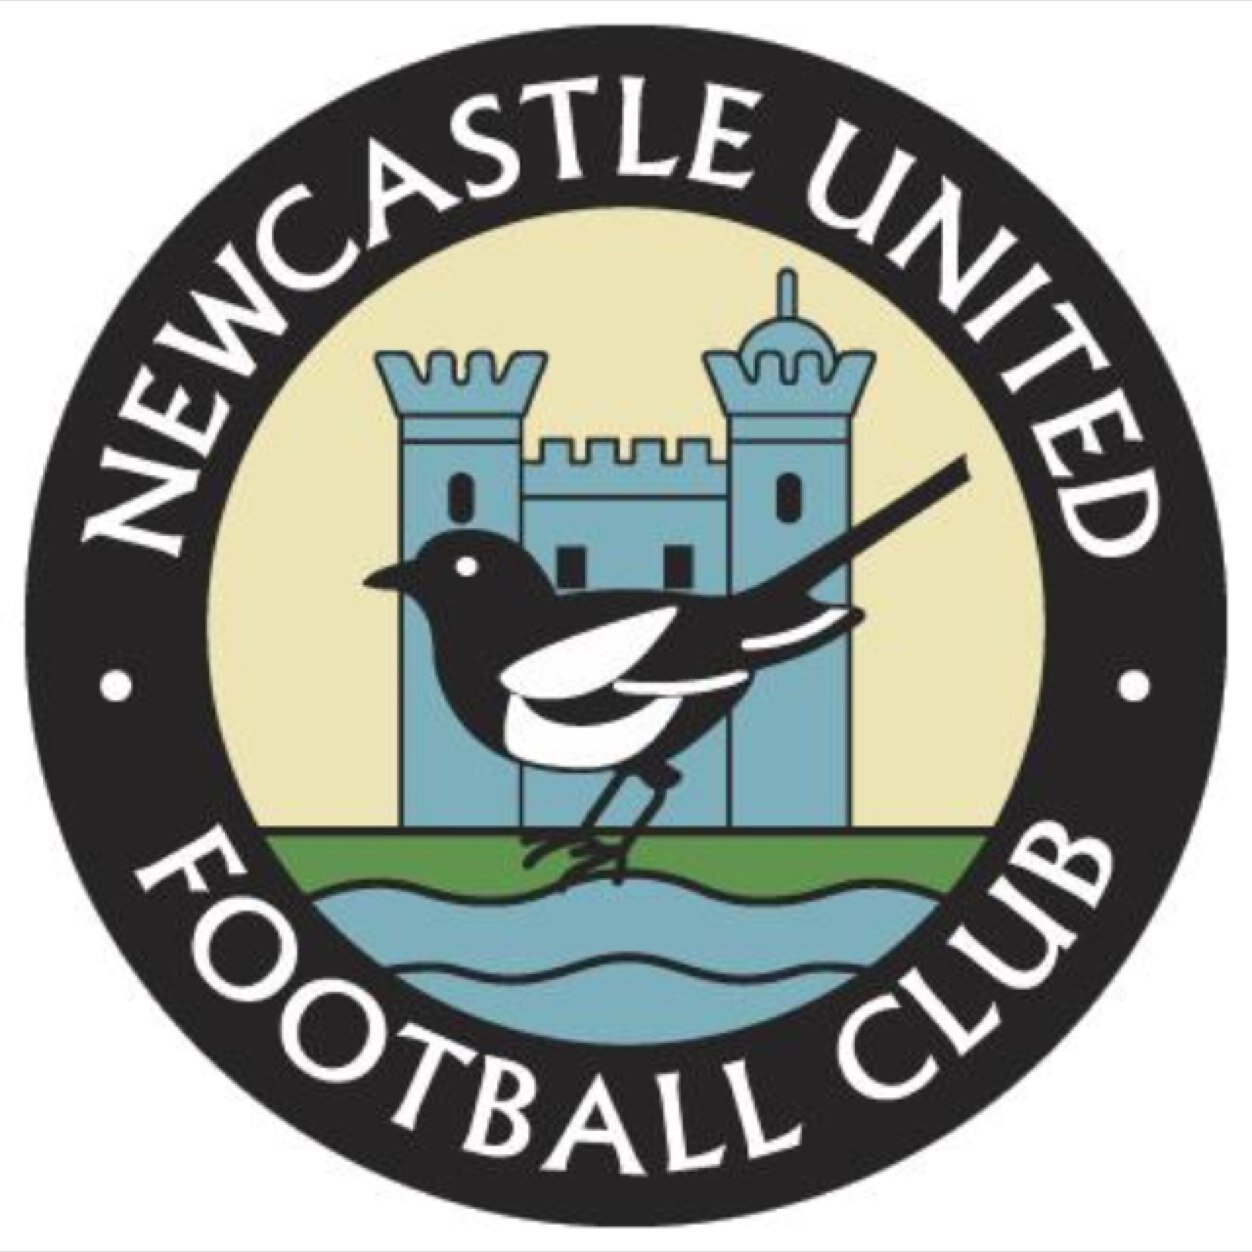 Video highlights from nufc tv, live match updates, latest news and player profiles from the official newcastle united club website. everything NUFC (@NUFCQuiz)   Twitter